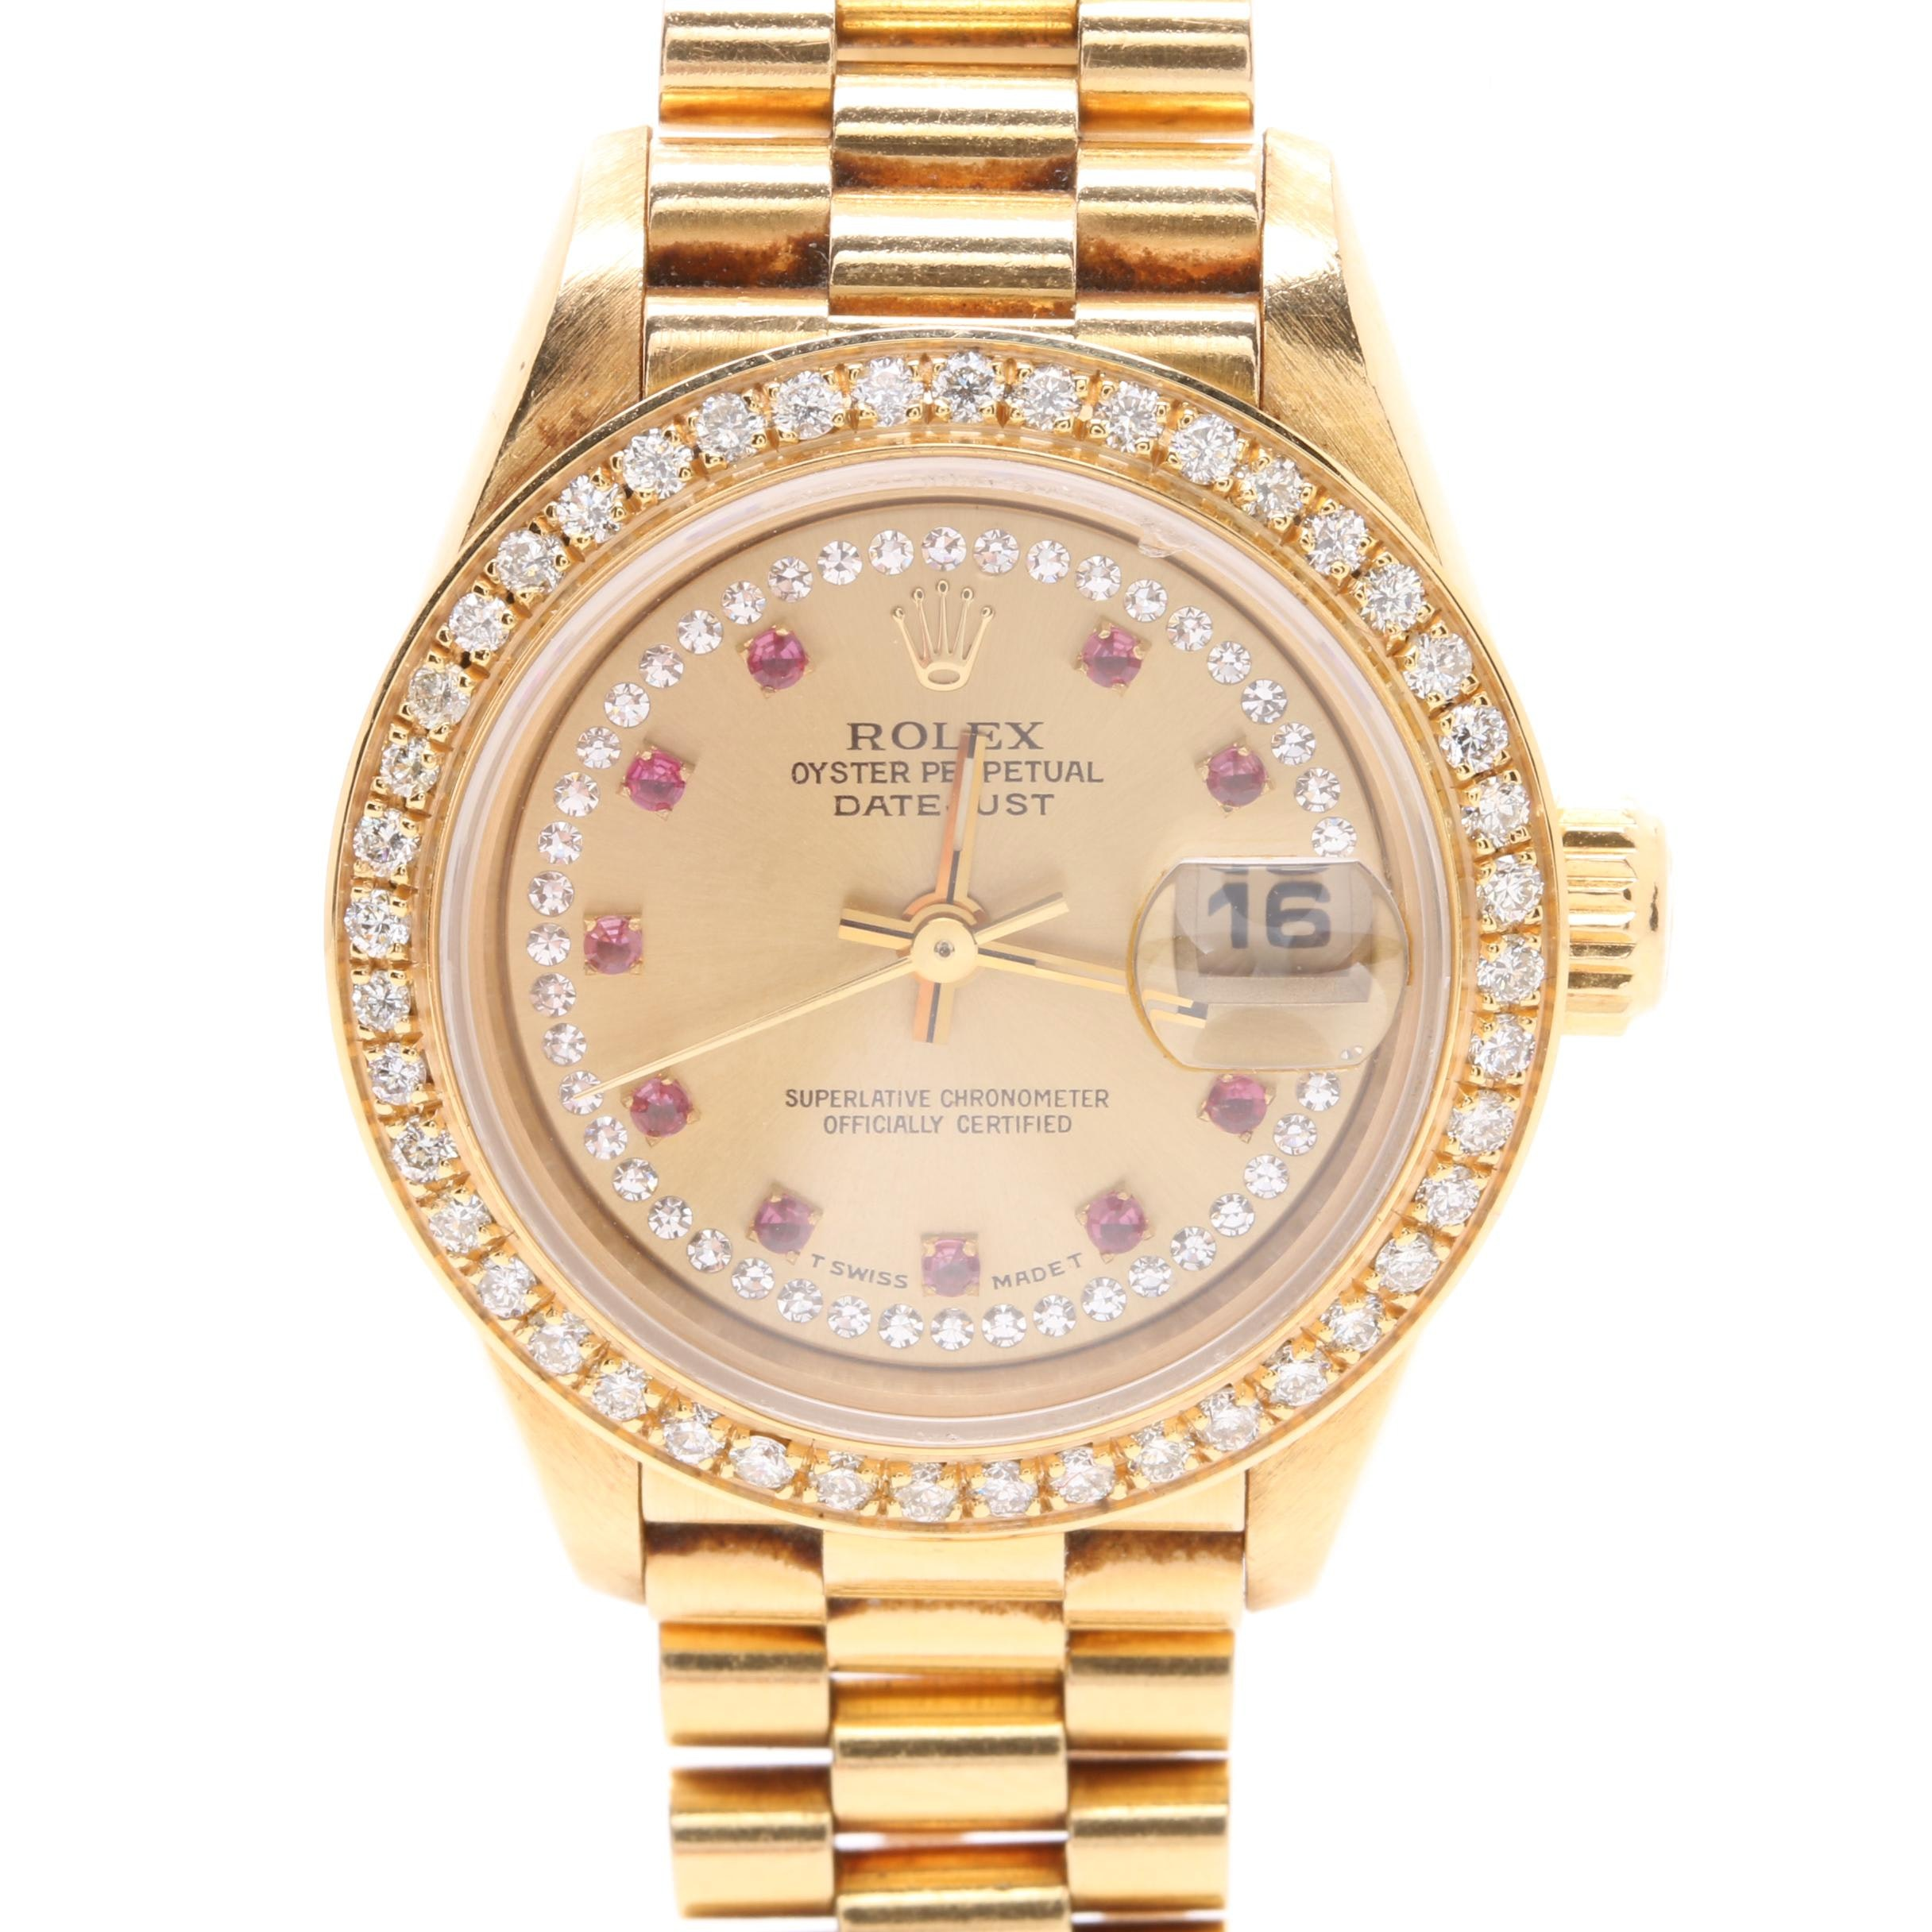 """Rolex """"Oyster Perpetual Datejust"""" 18K Yellow Gold Diamond and Ruby Wristwatch"""